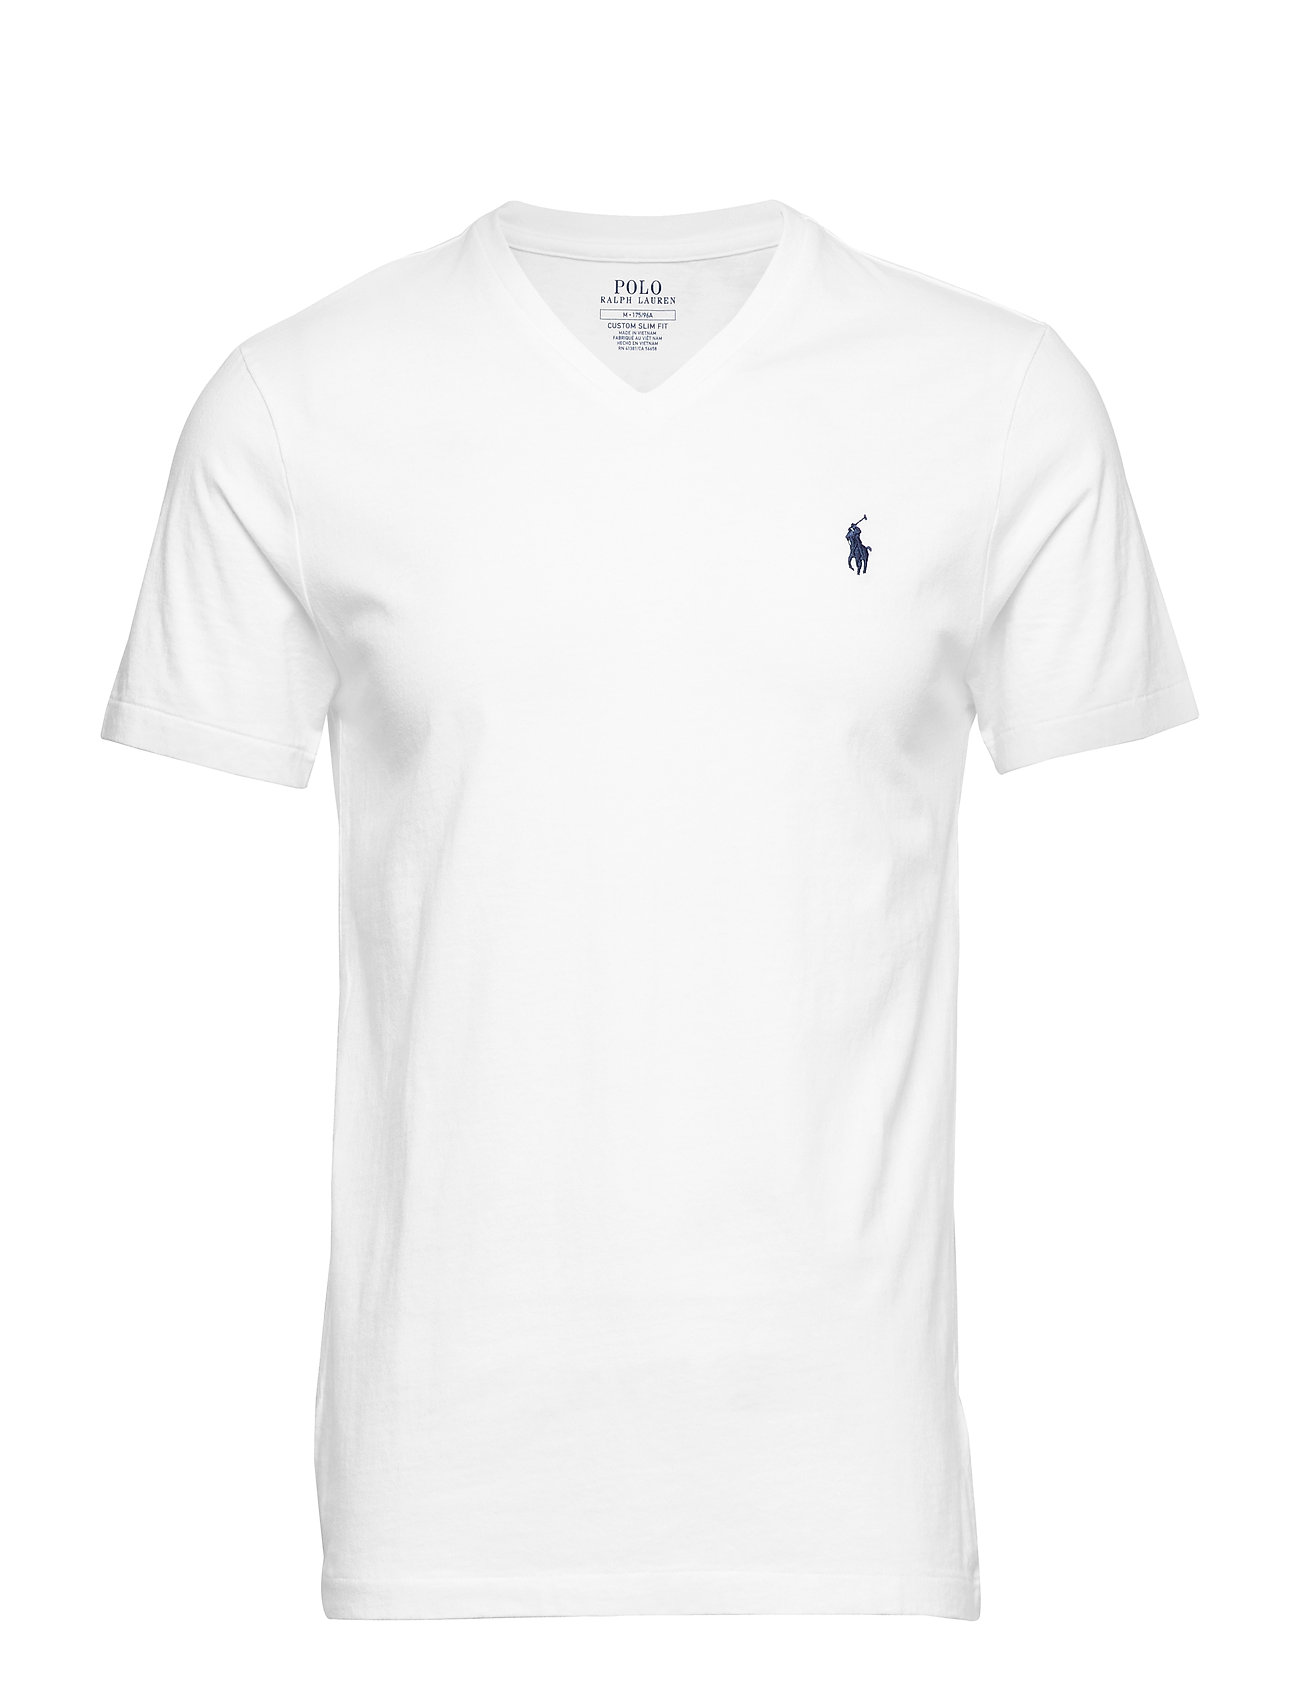 Polo Ralph Lauren Custom Slim Fit V-Neck T-Shirt - WHITE